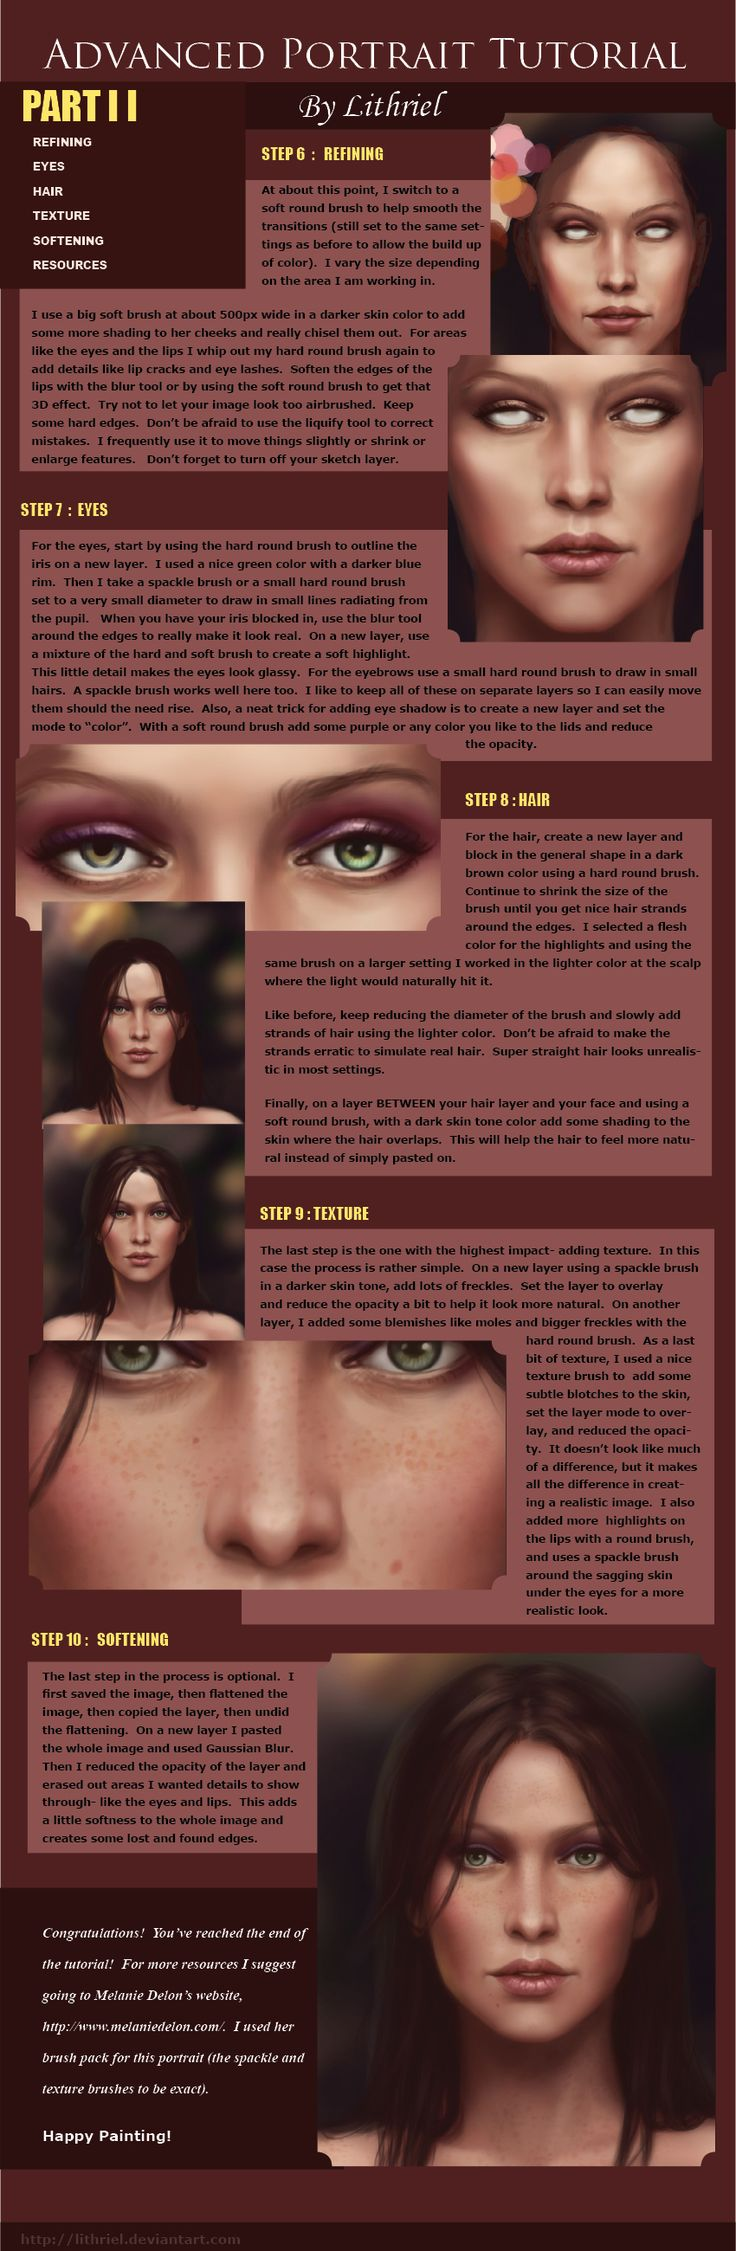 Digital Painting Tutorial Pt 2 by `lithriel on deviantART